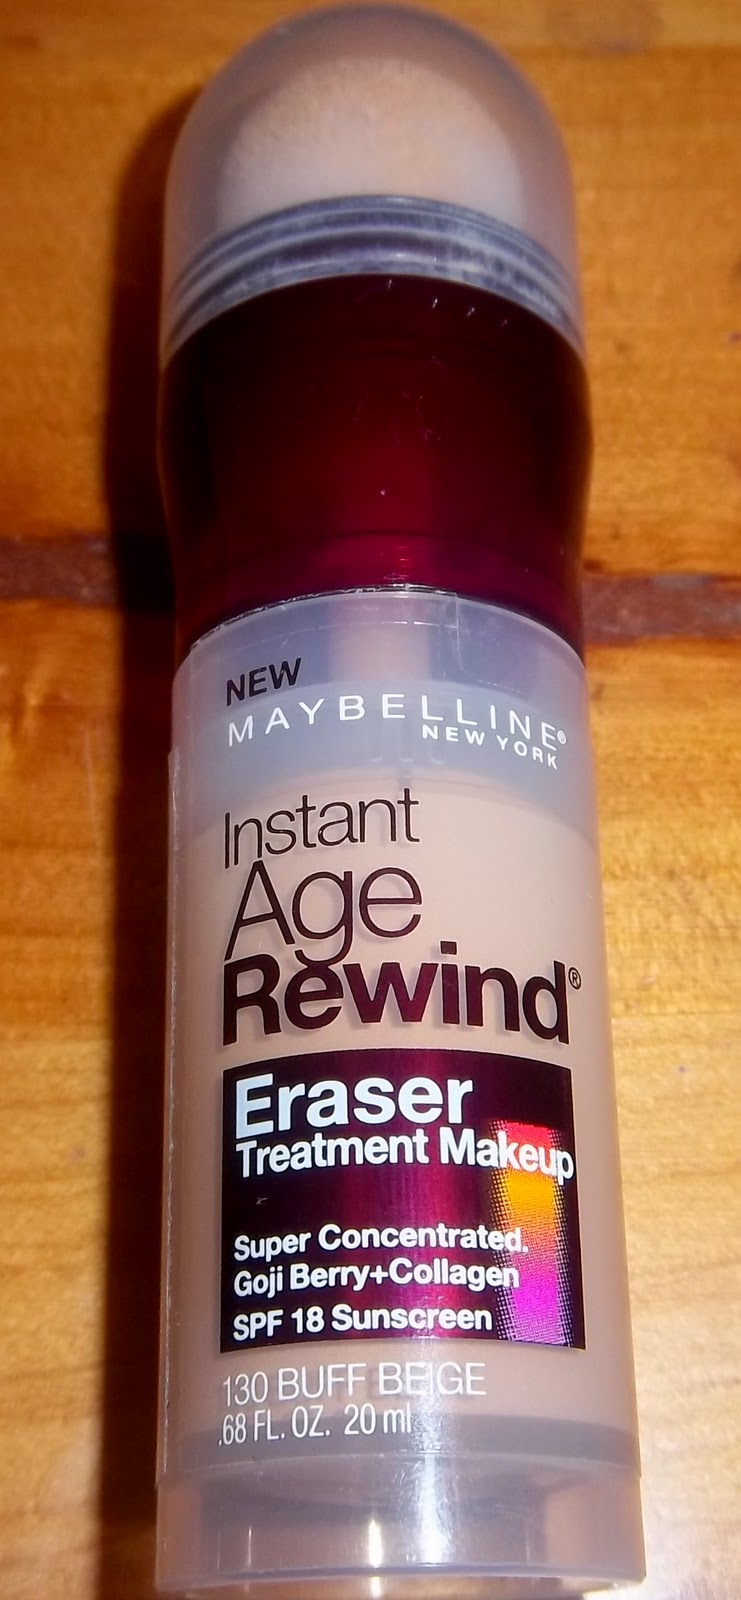 REVIEW - Maybelline Instant Age Rewind Eraser Treatment Makeup ...